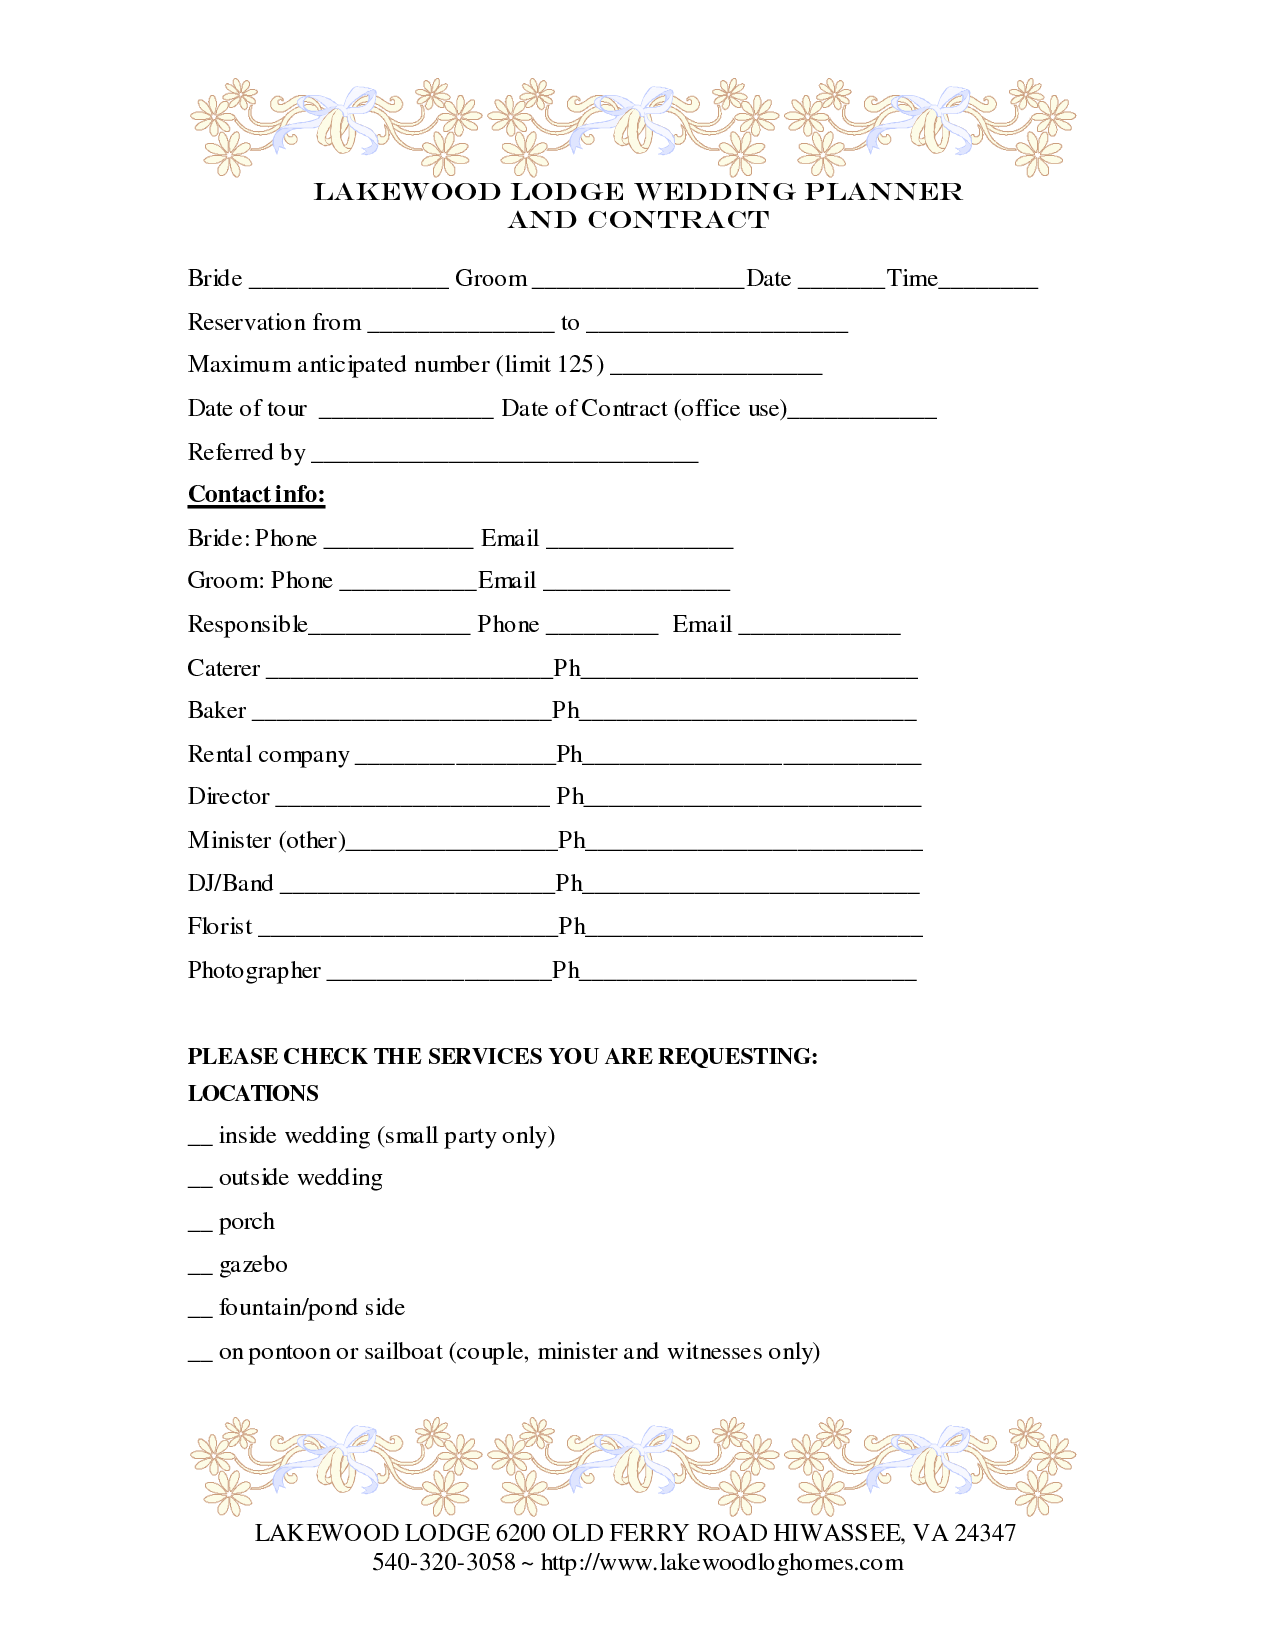 Wedding Planner Contract Template Weddings Decorations In 2018